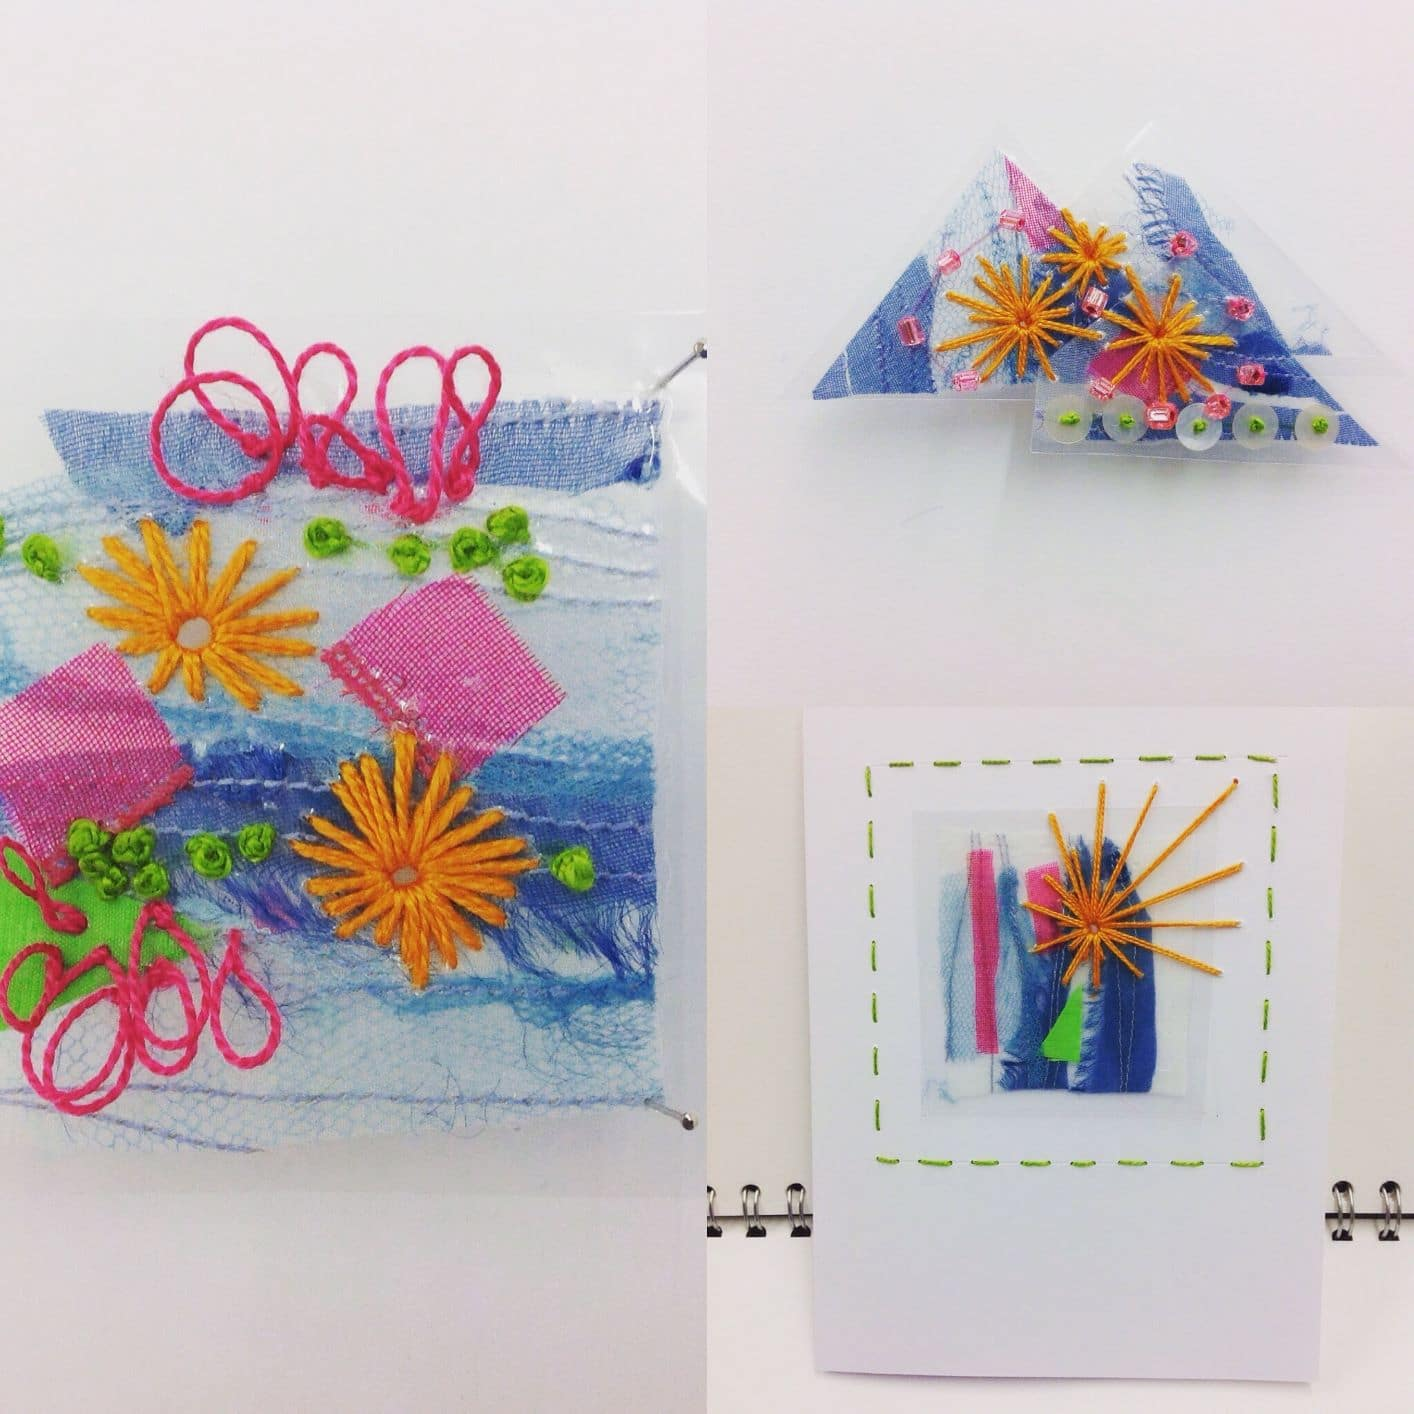 Introduction to Laminated Stitch